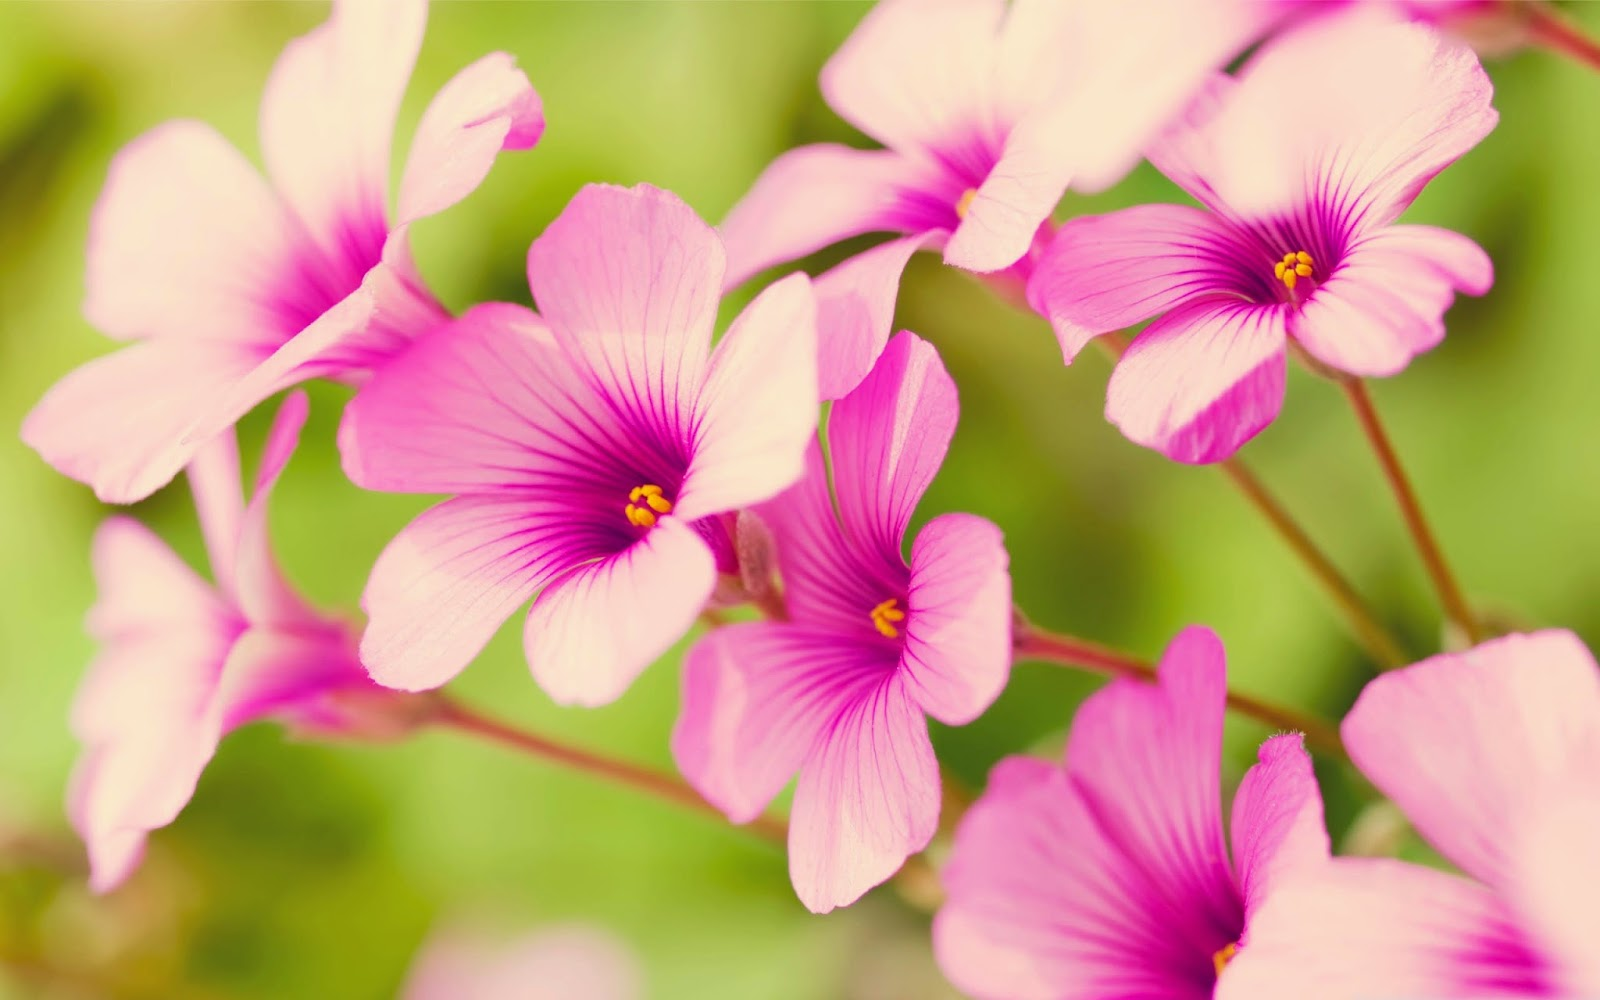 Pink Flowers Hd Wallpapers Free Download For Pc Online Fun